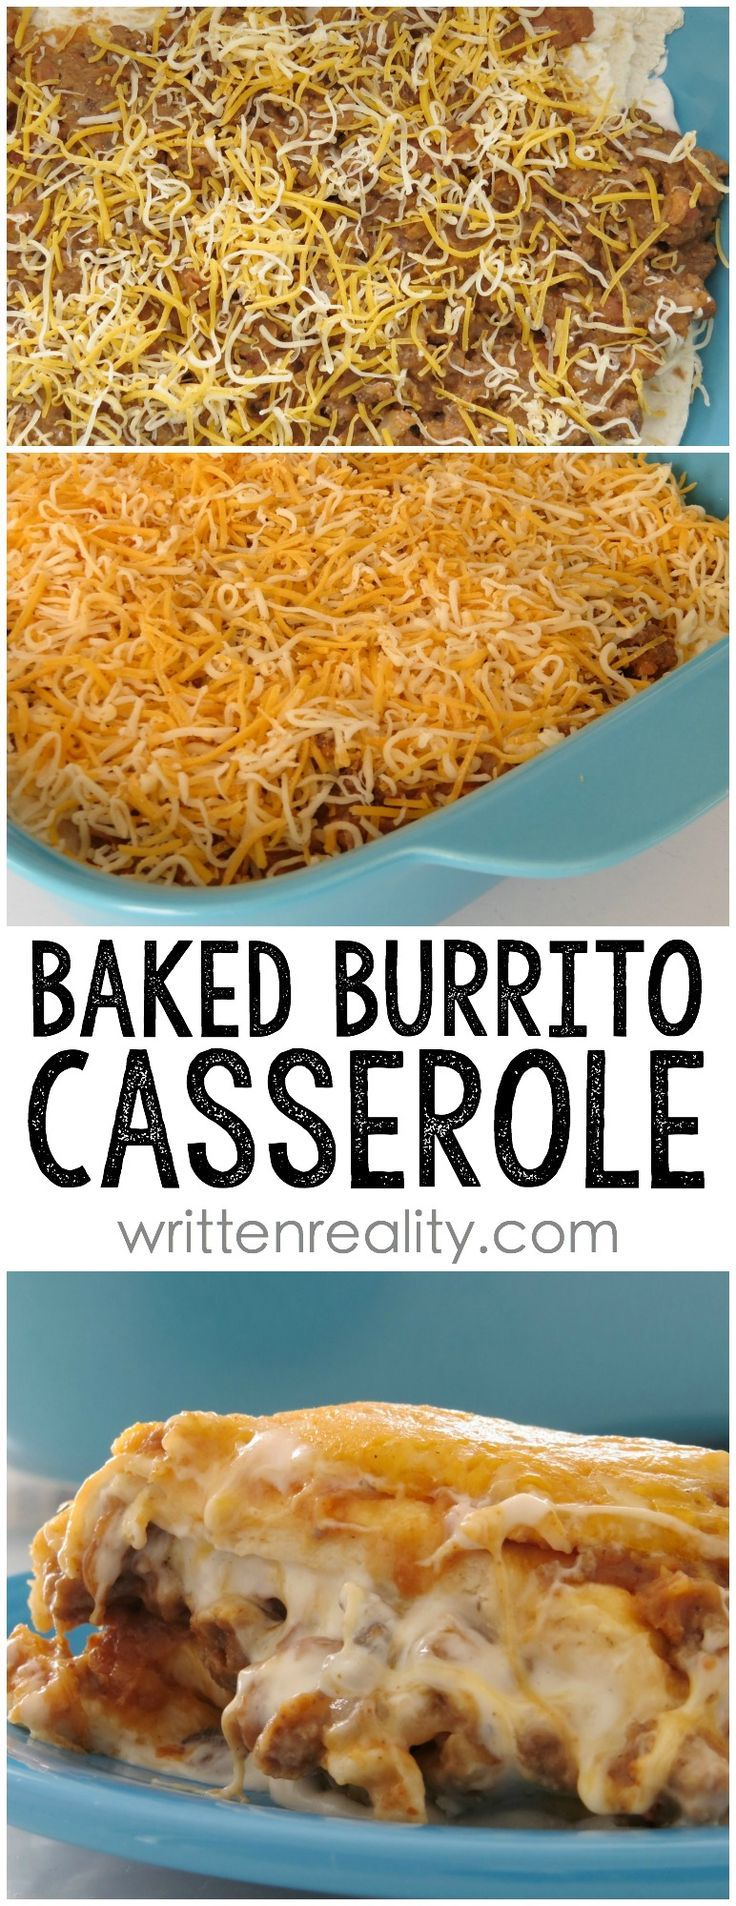 This Baked Burrito Casserole is an easy casserole recipe that's filled with ground beef and loaded with cheese. It's a one dish meal your…